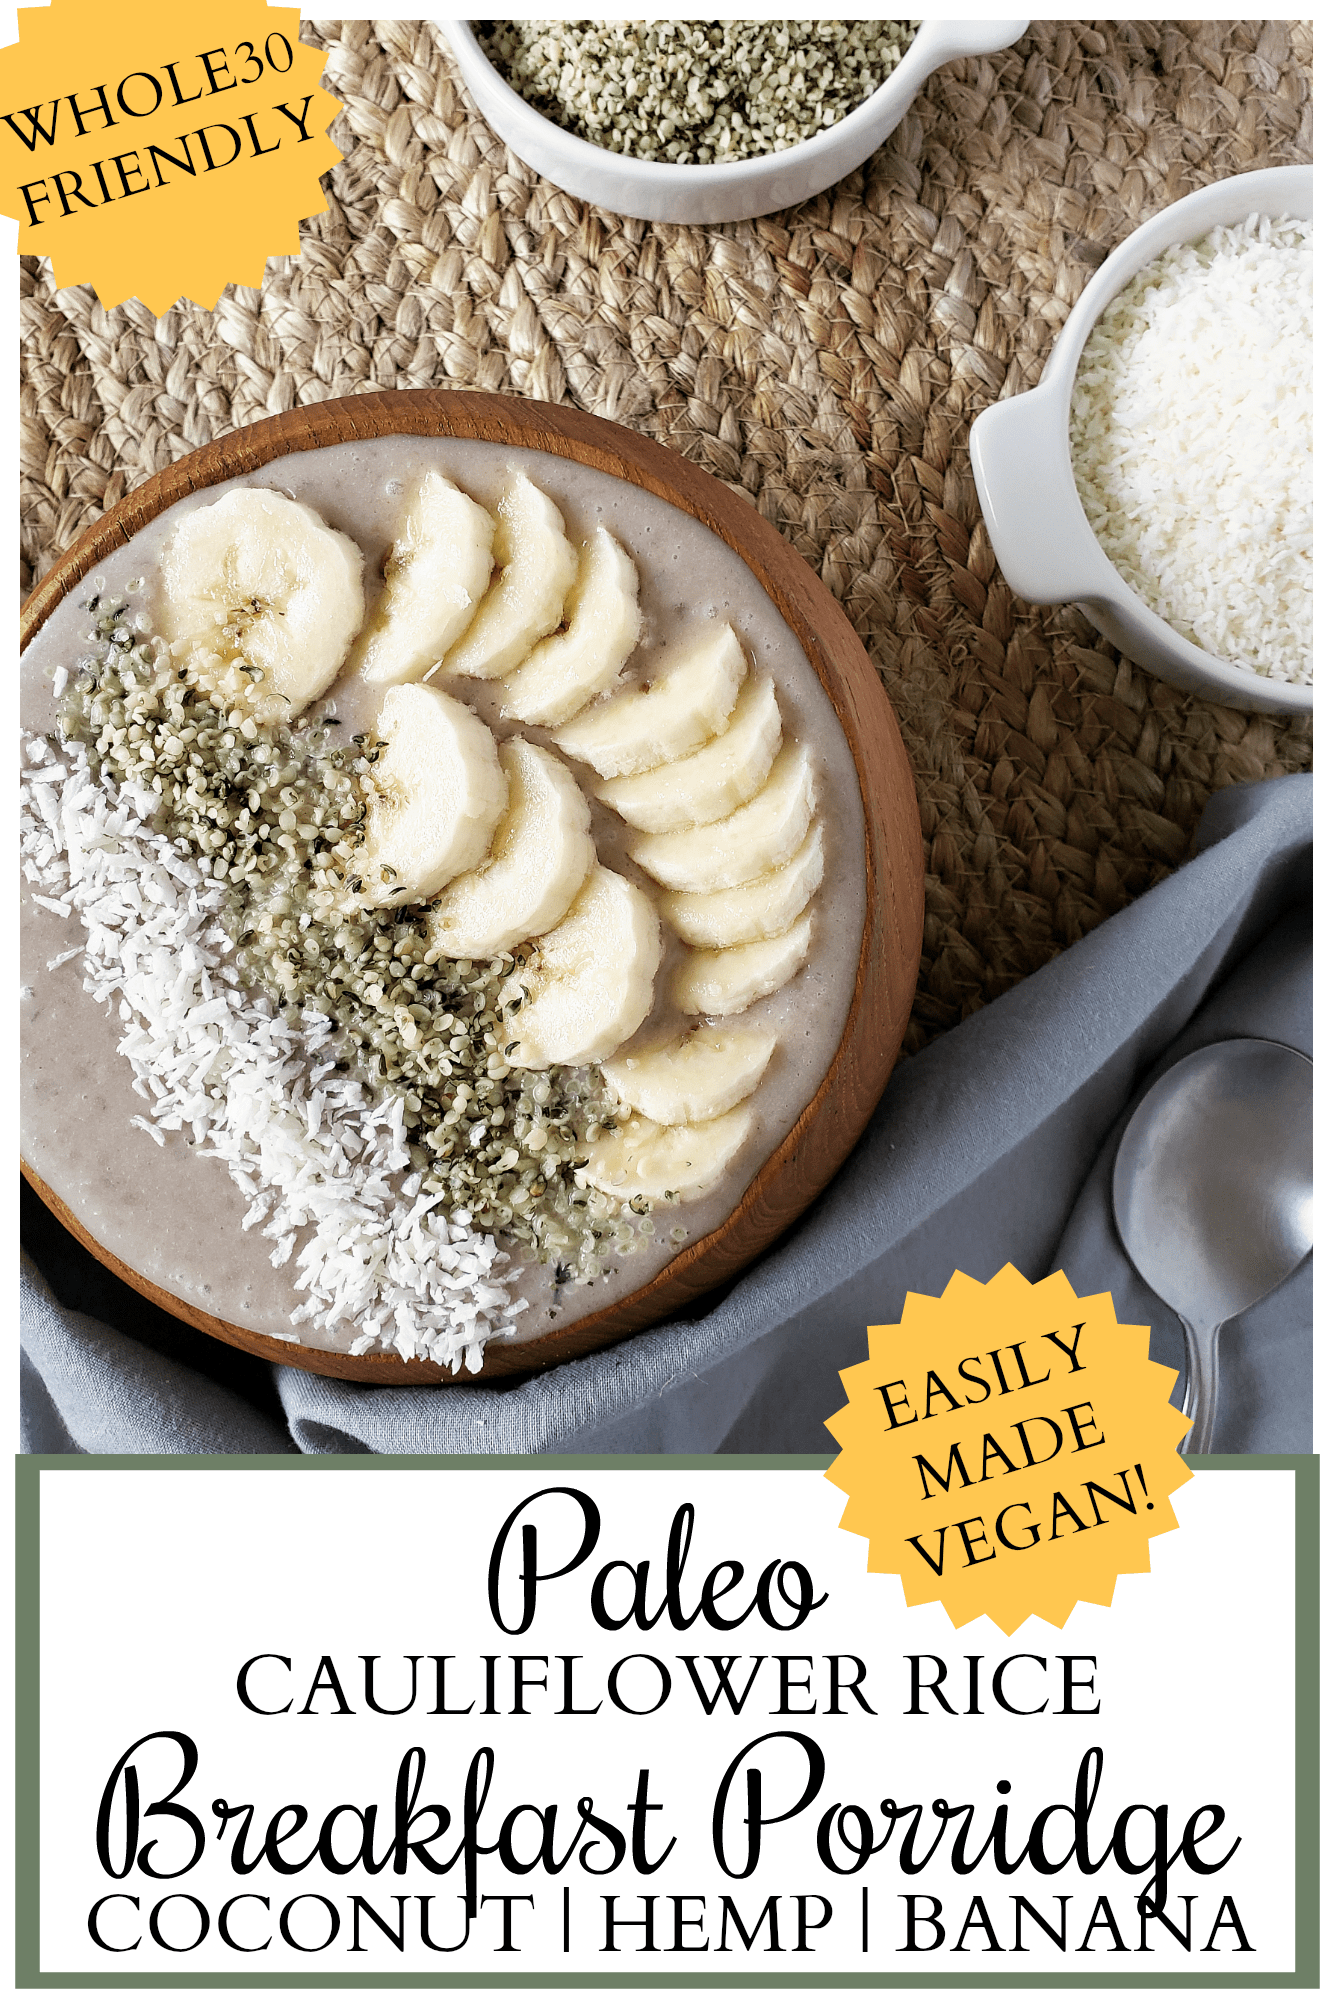 Start your day with a serving of vegetables so delicious you won't believe it! This quick and easy Paleo breakfast porridge is hiding cauliflower rice along with other nutritious ingredients, yet it tastes great! Easy, Paleo, Whole30 and allergy-friendly, this Paleo breakfast porridge is a great substitute for oatmeal and other traditional grain-filled breakfast options.